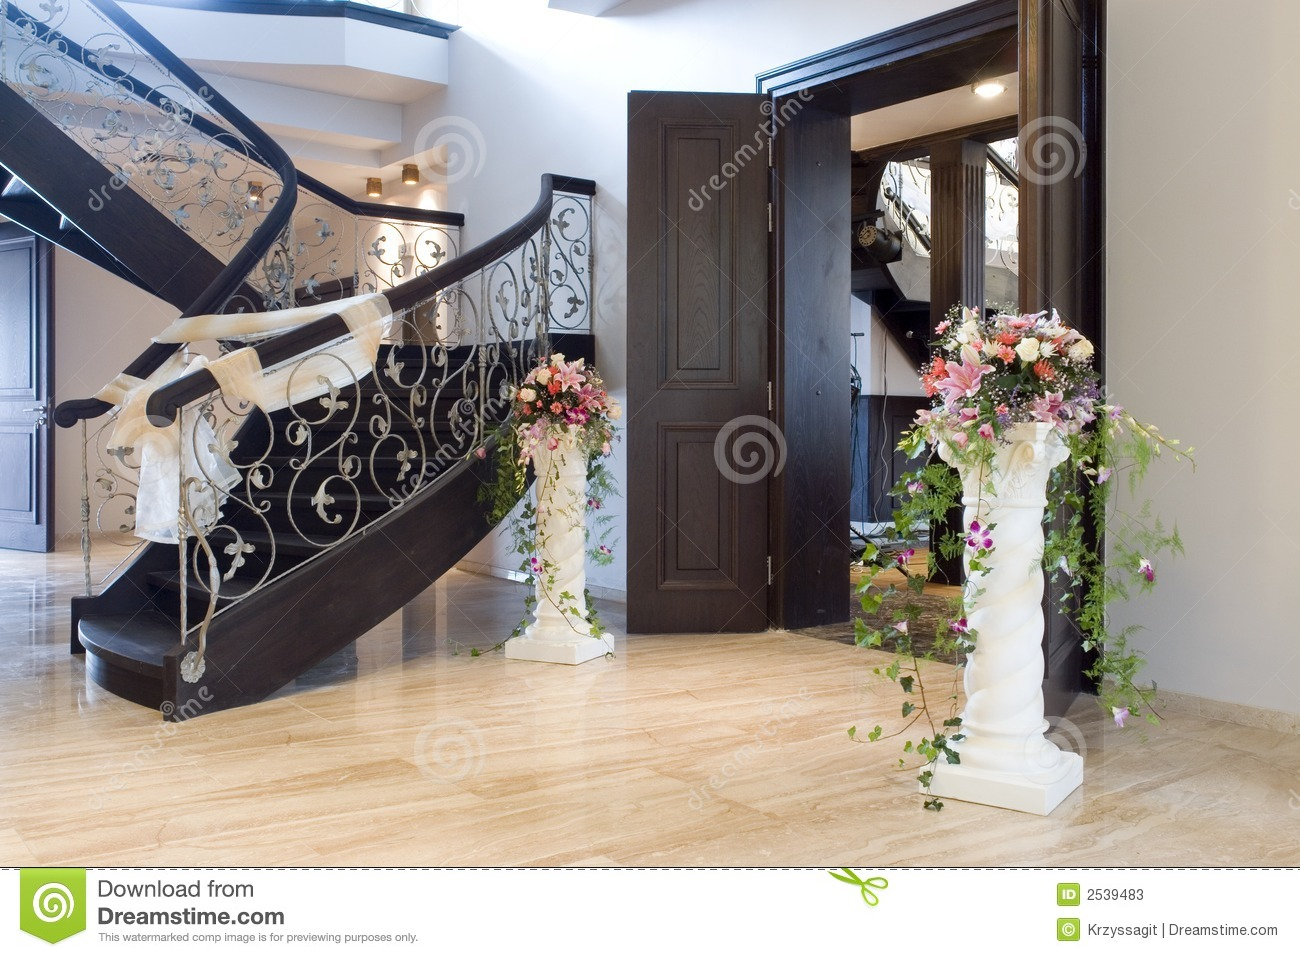 The Elegant Interior Of A House In The Entryway Or Foyer More In My